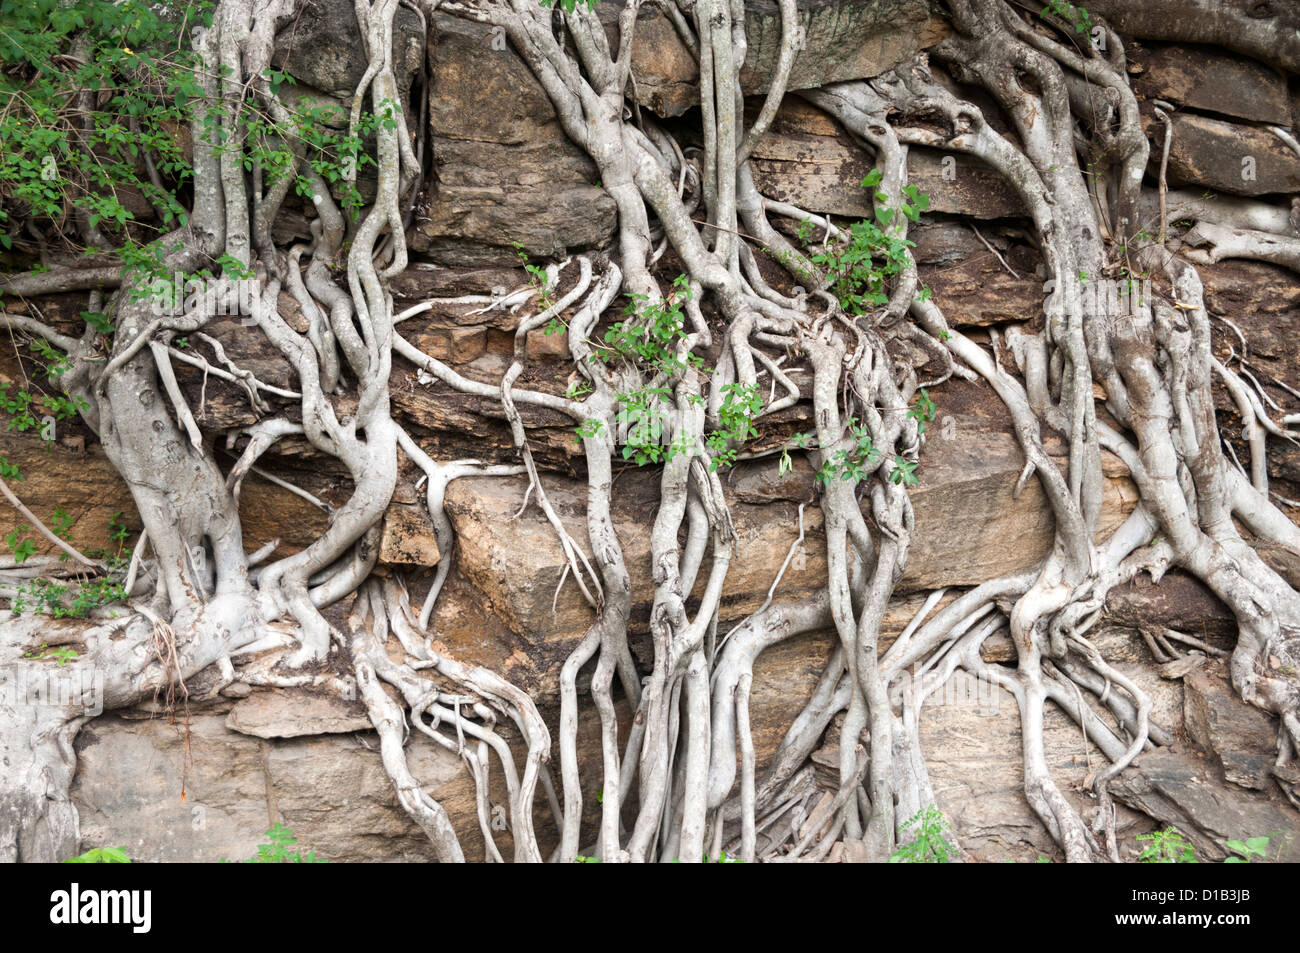 Tree roots over rocks, Marayur forest, kerala, India - Stock Image